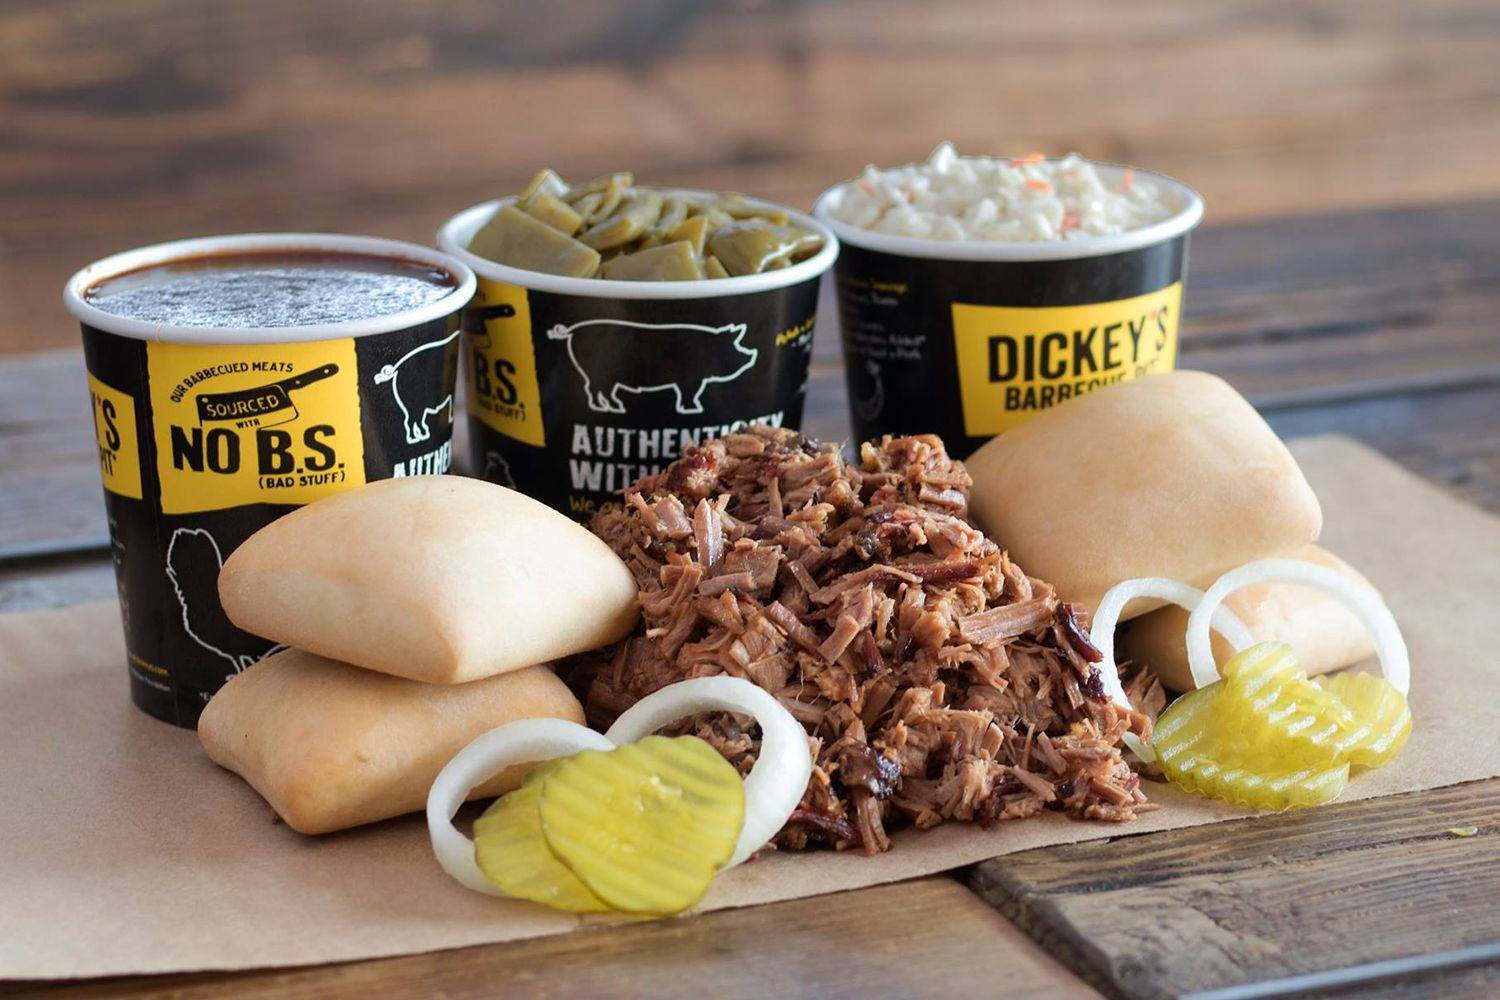 Entrepreneurial Duo Bring Dickey's Barbecue Pit to Garland